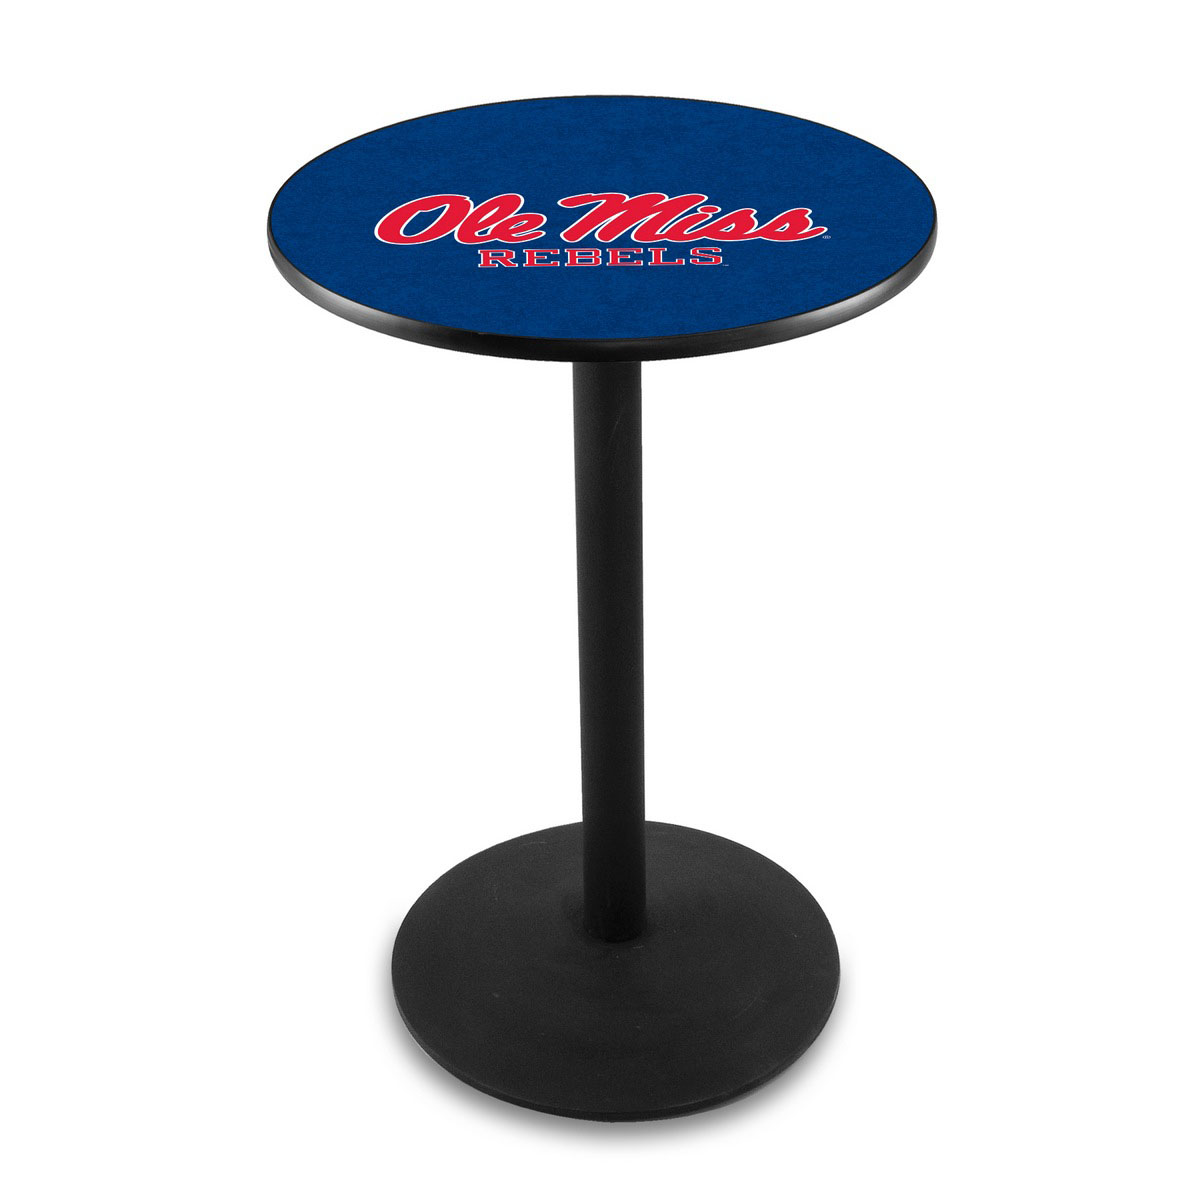 Excellent University Mississippi Logo Pub Bar Table Round Stand Product Photo